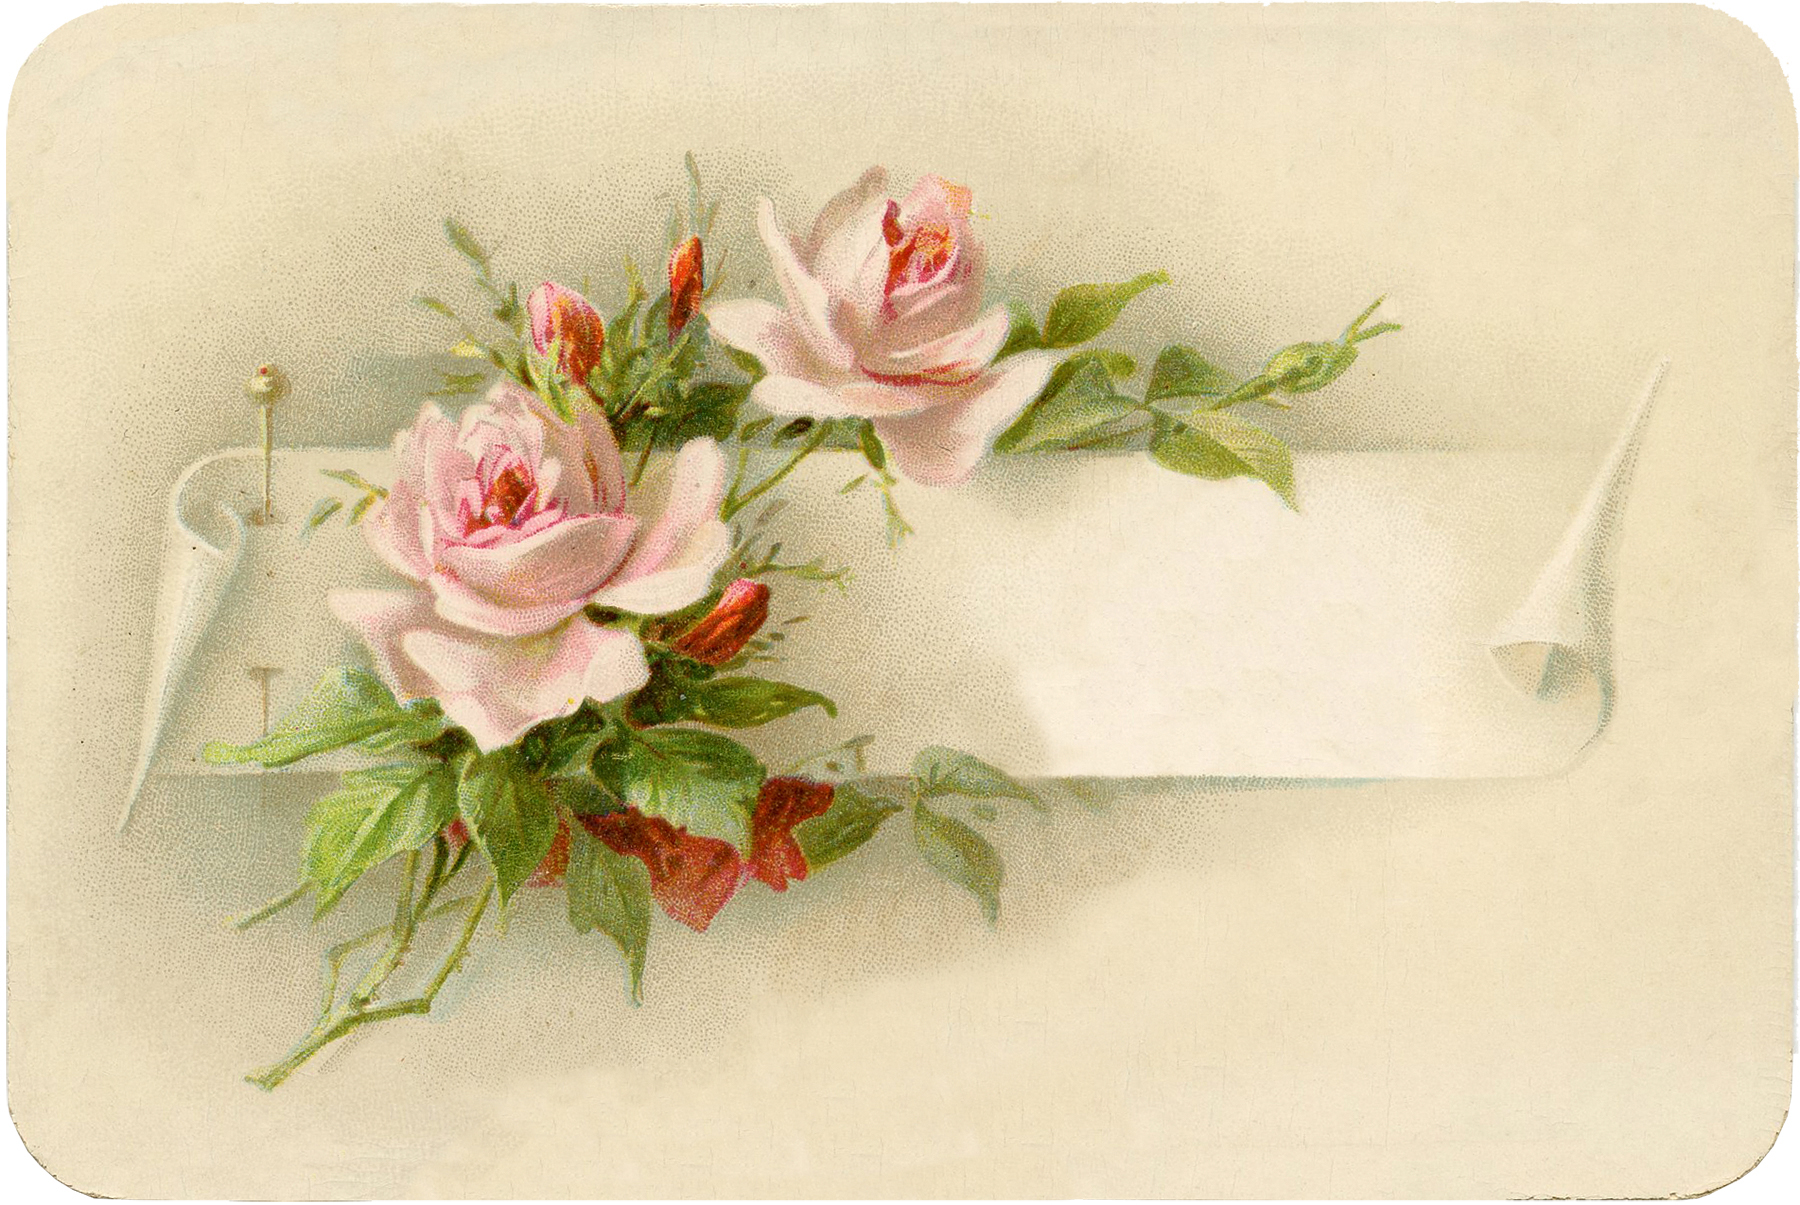 Exceptionally Beautiful Vintage Roses with Pin Image  -> Vintage Kommode Rosa